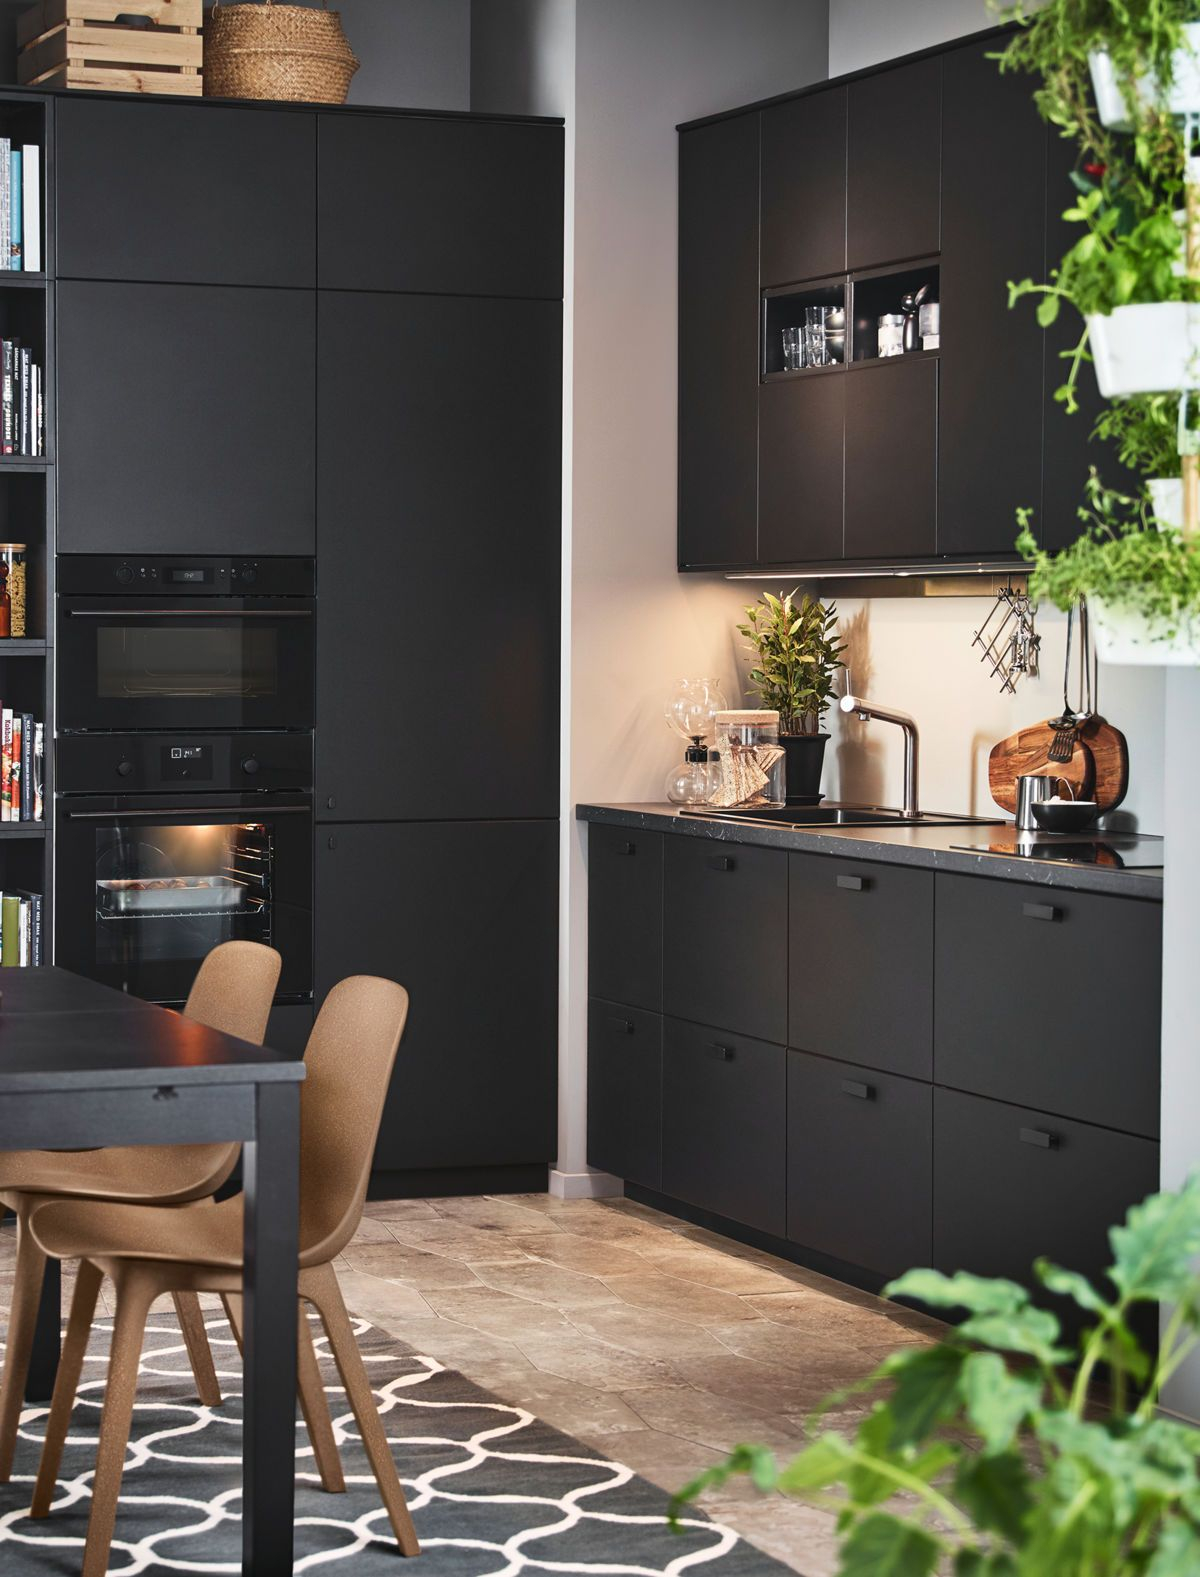 Neue Ikea Küchenfronten 2019 Kitchen Brochure 2018 Kitchen Ideas In 2019 Ikea Kitchen